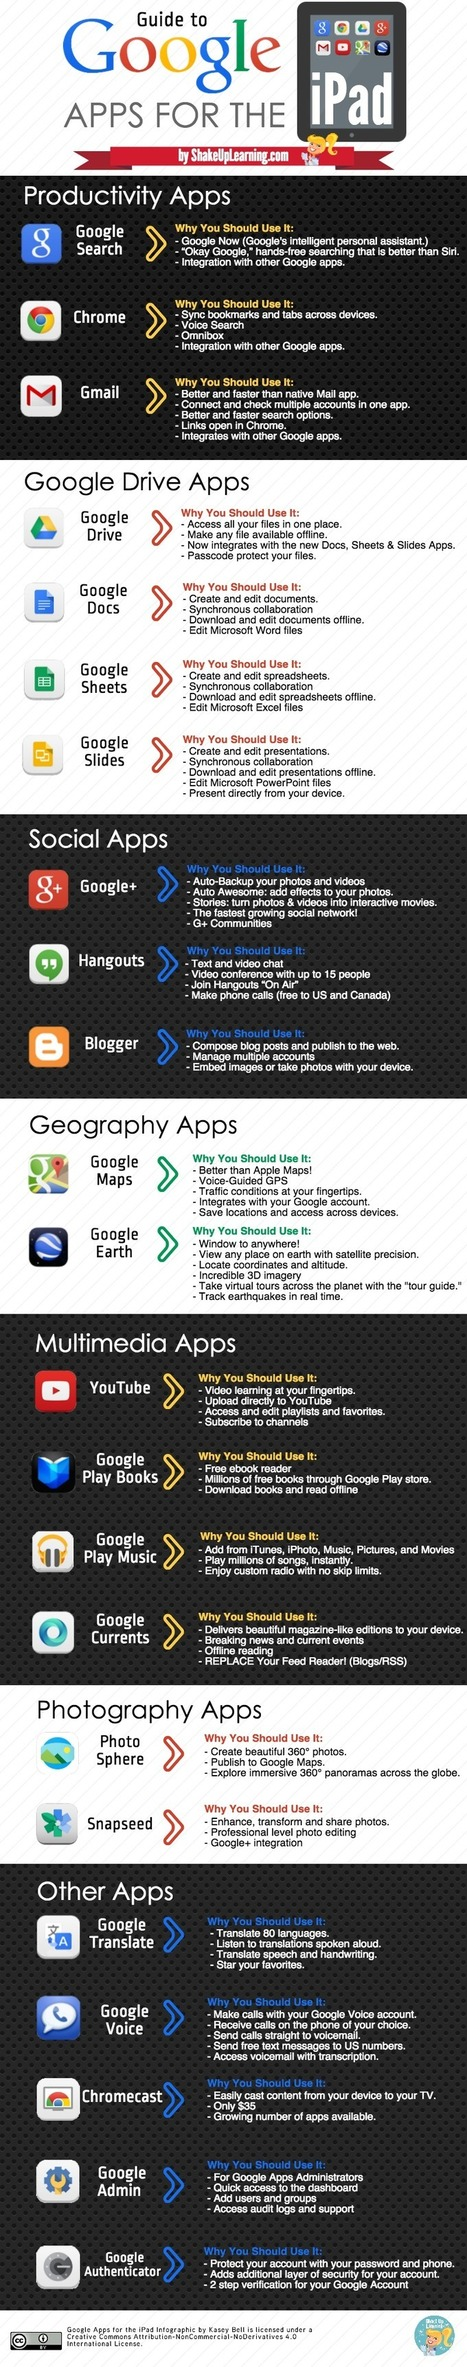 Guide to Google Apps for the iPad - Infographic | E-Capability | Scoop.it